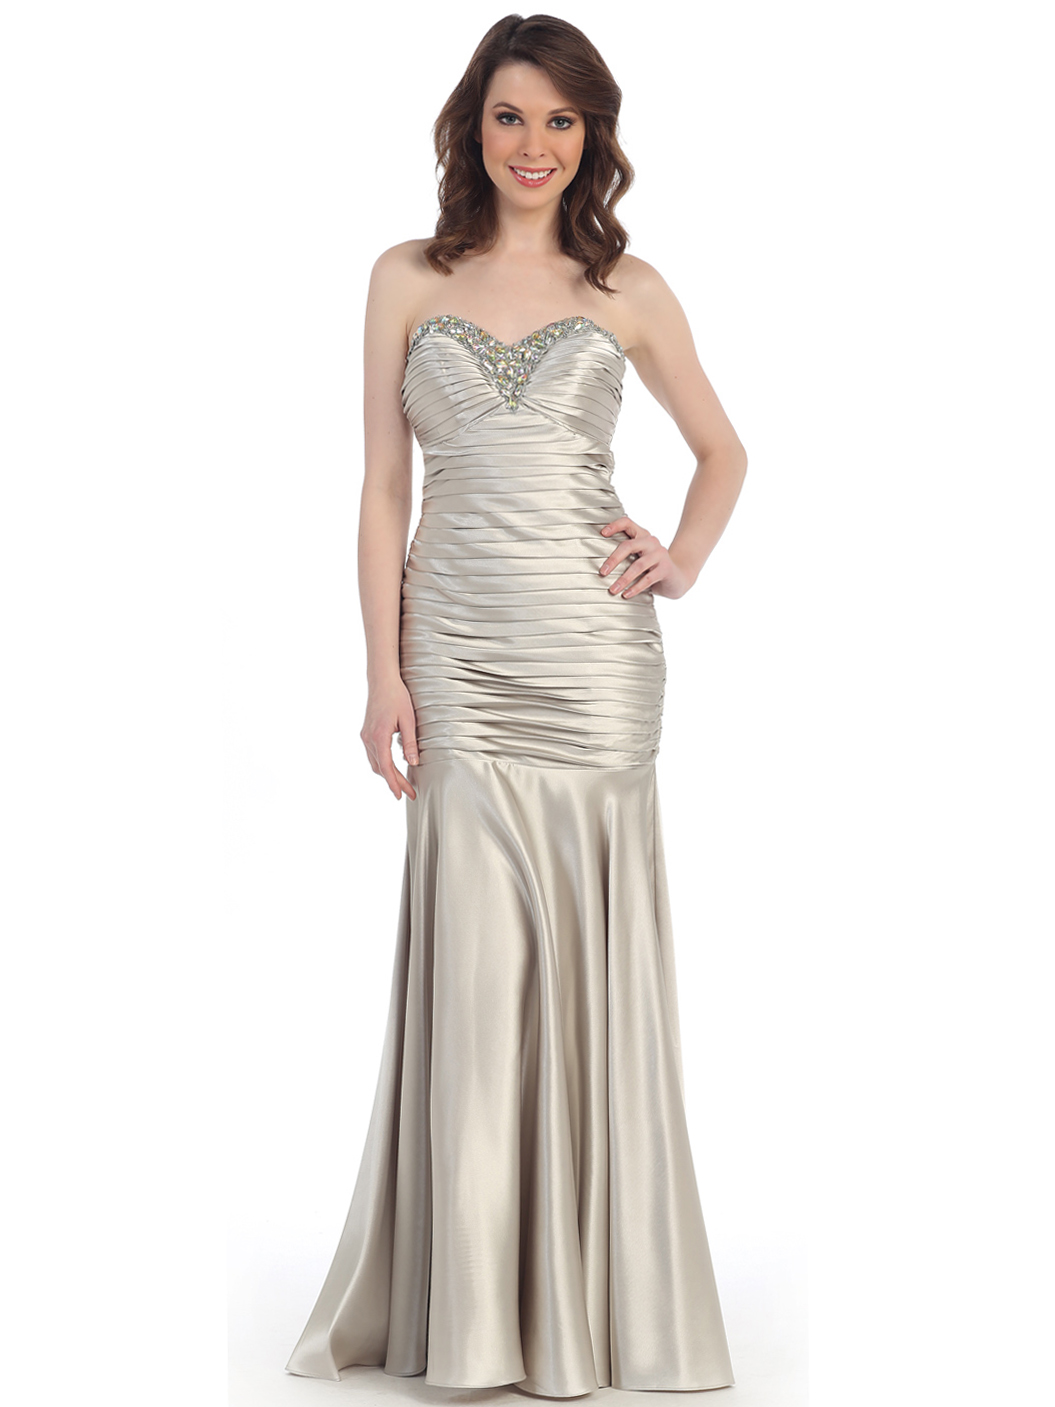 Strapless Sweetheart Dropped Waist Mermaid Gown | Sung ...